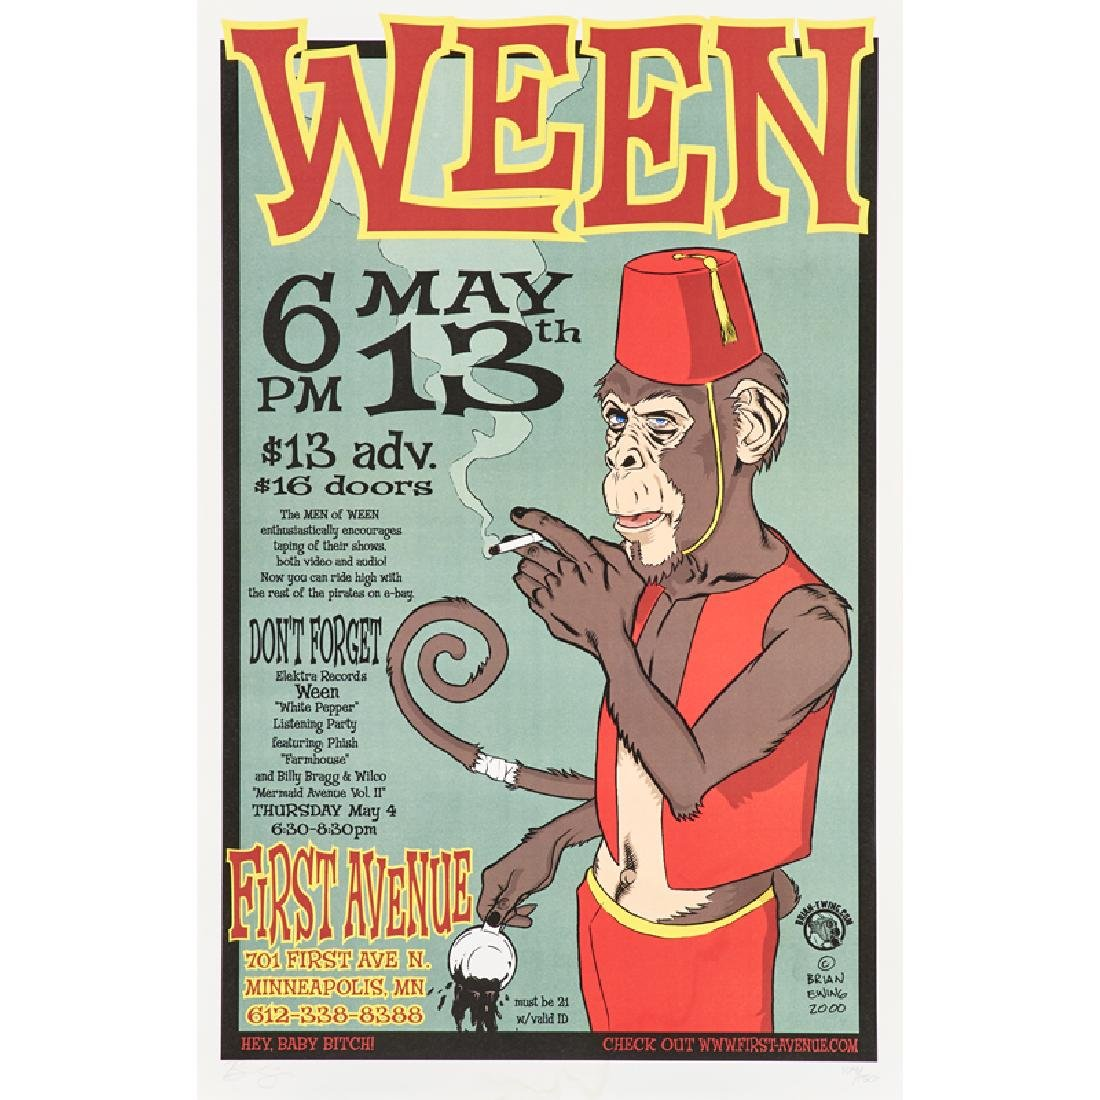 CONTEMPORARY CONCERT POSTER